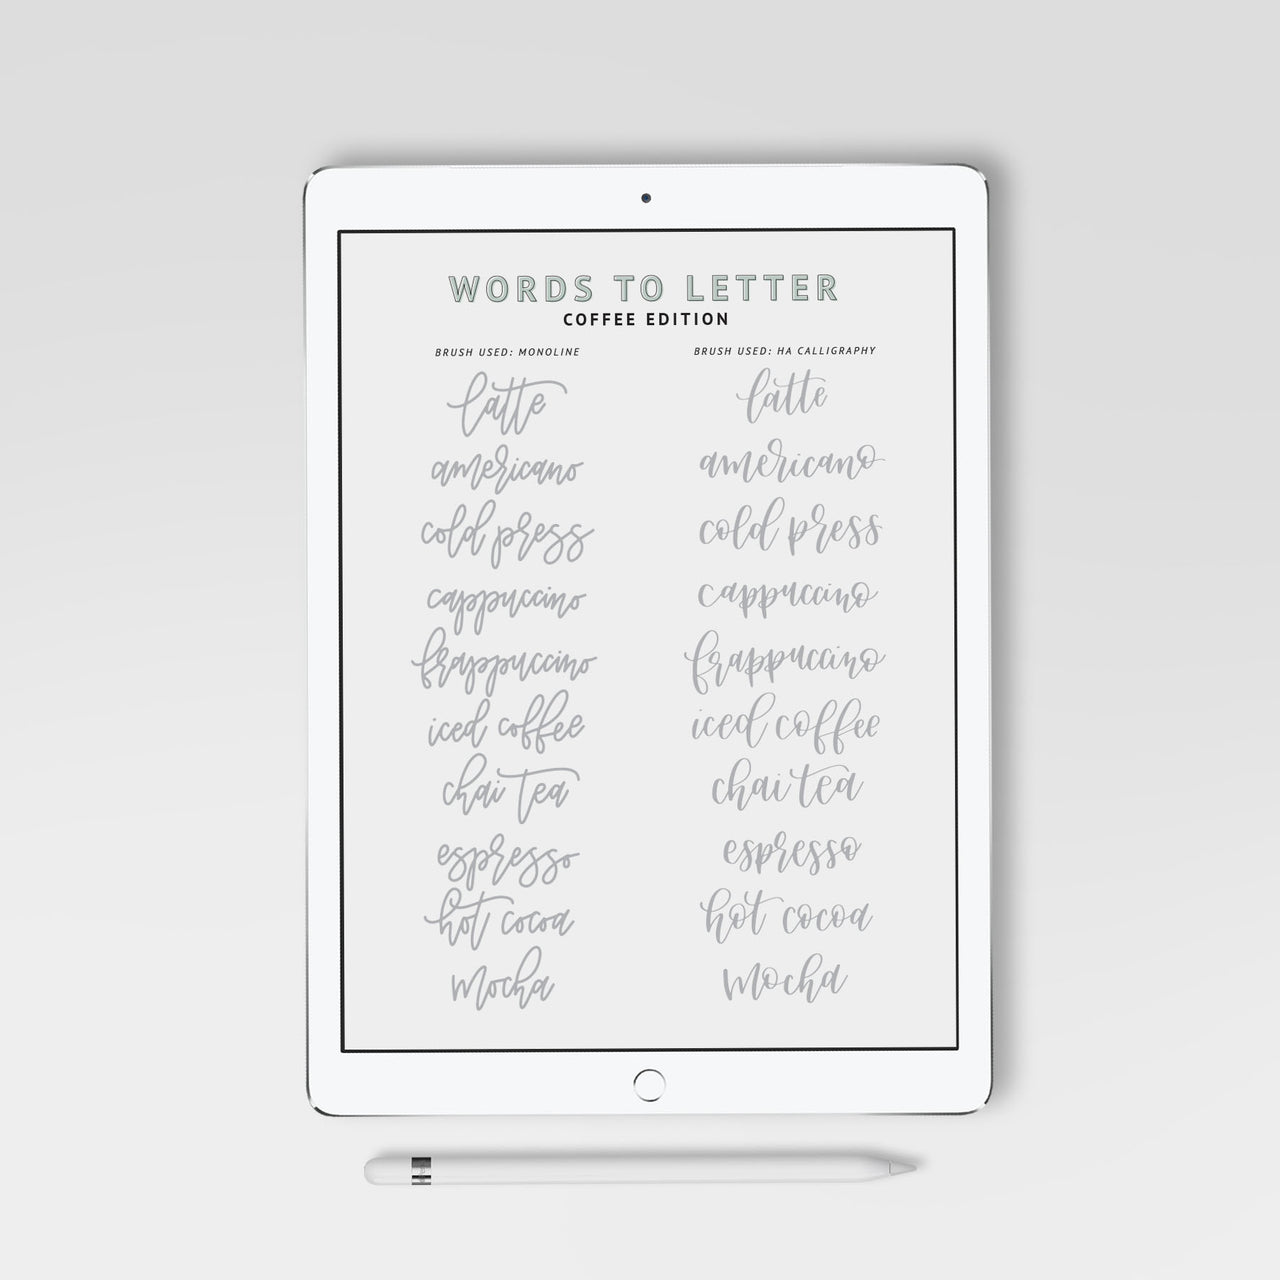 Lettering Practice Sheets, iPad Lettering, Words to Letter Coffee Edition - Hewitt Avenue